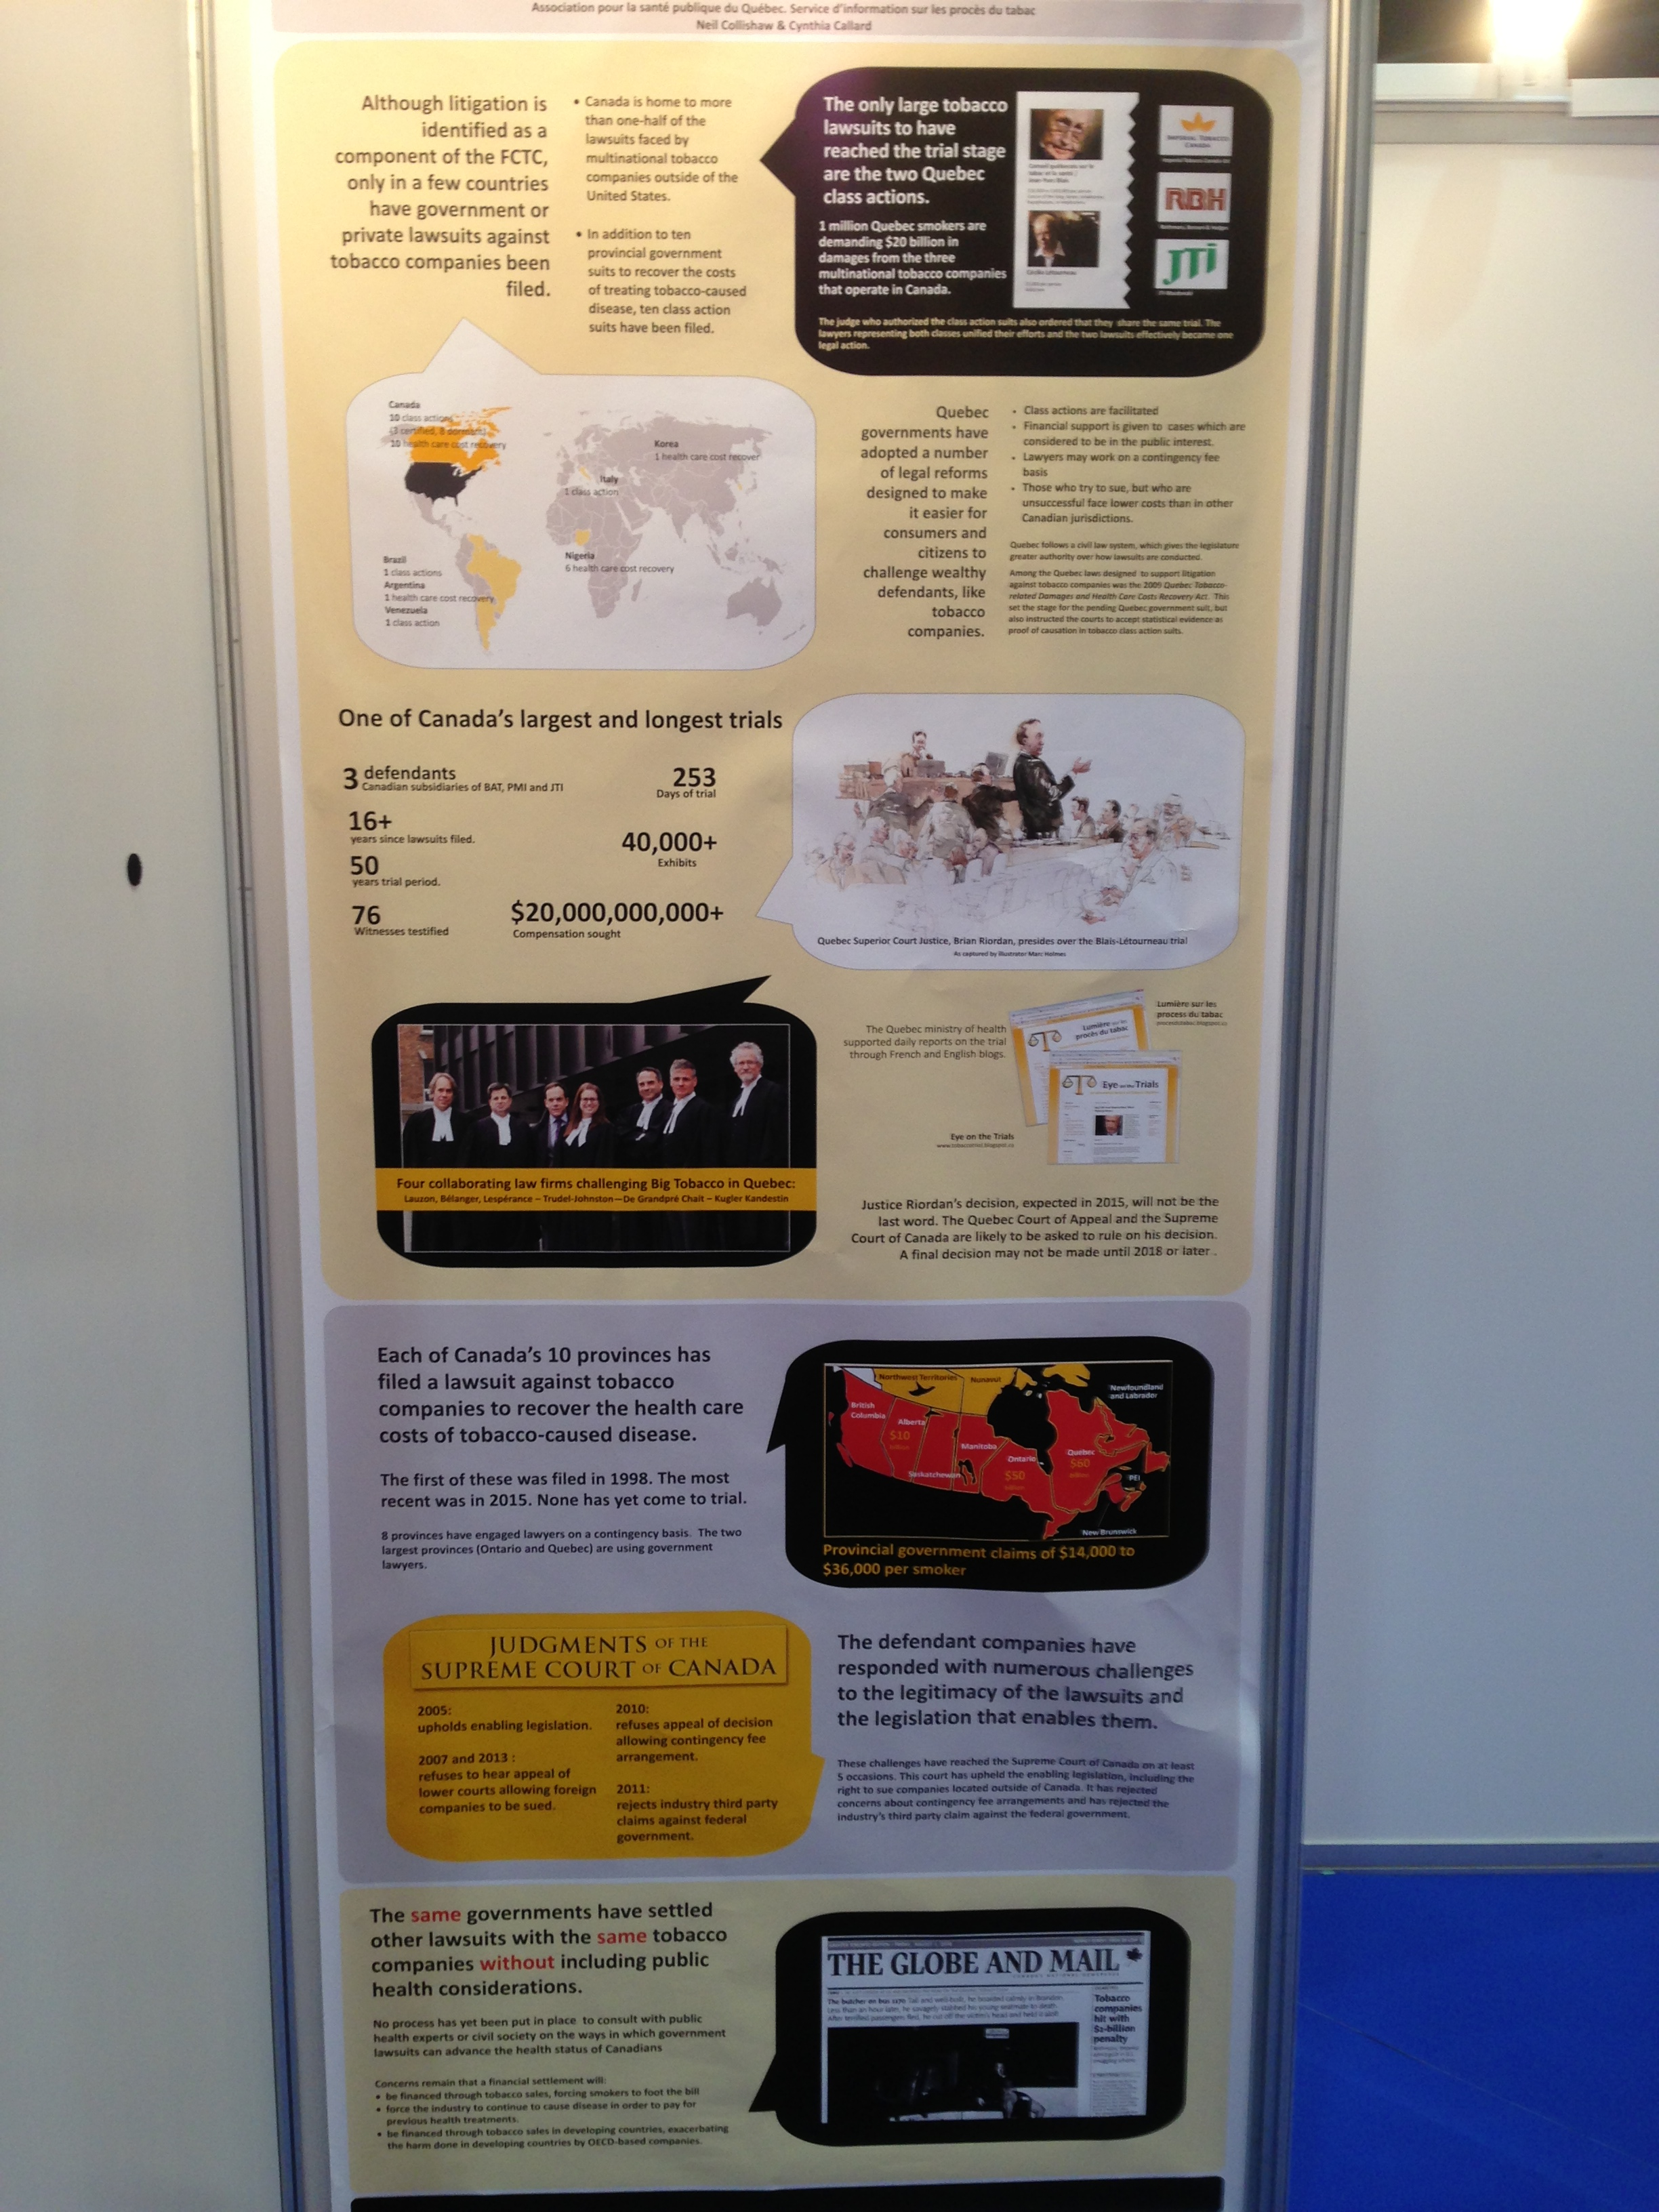 Poster shown at the 16th World Conference on Tobacco or Health, Abu Dhabi, March 2015